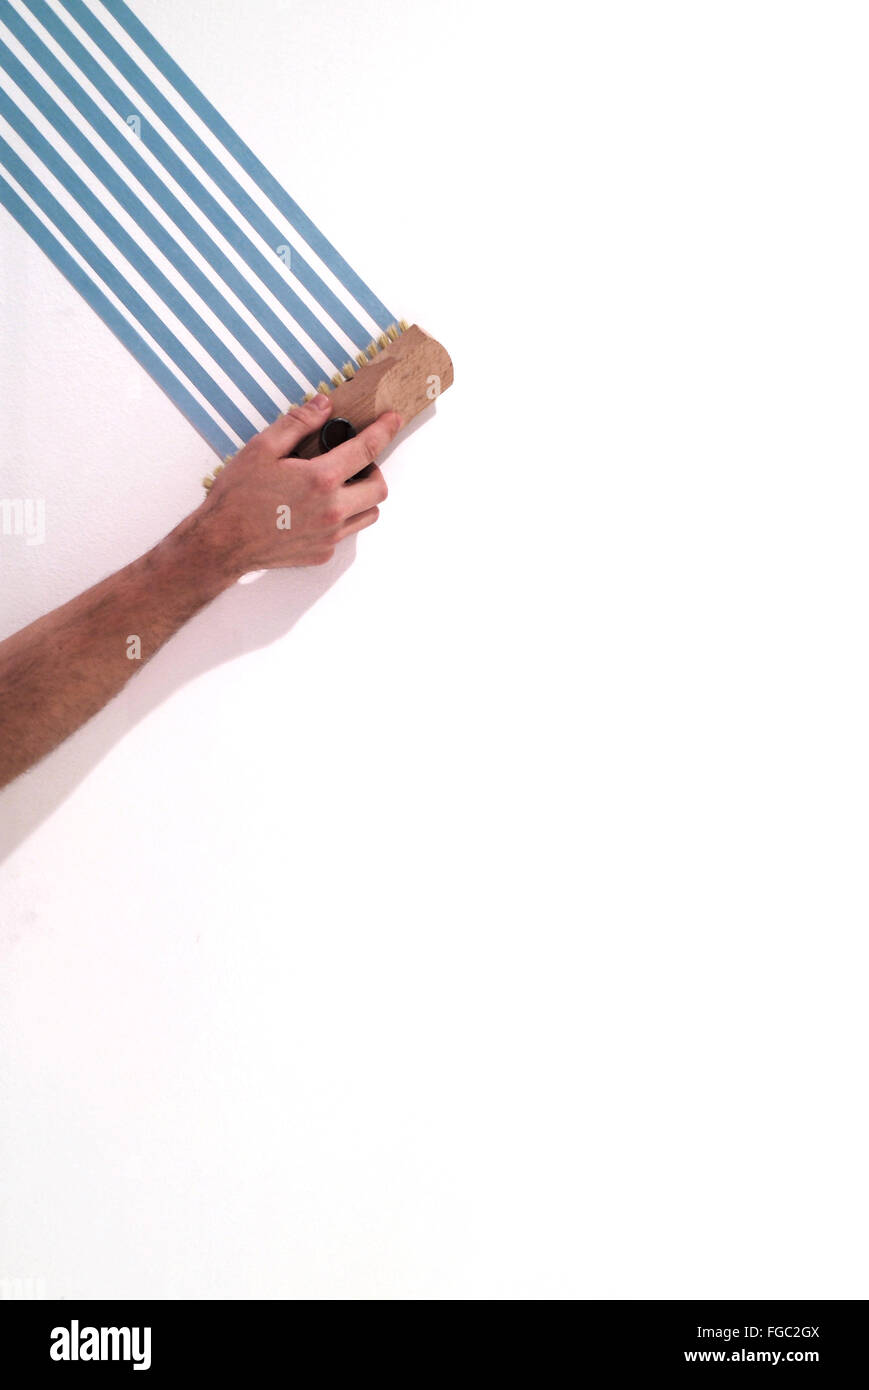 Cropped Image Of Hand Holding Brush While Painting On Wall - Stock Image